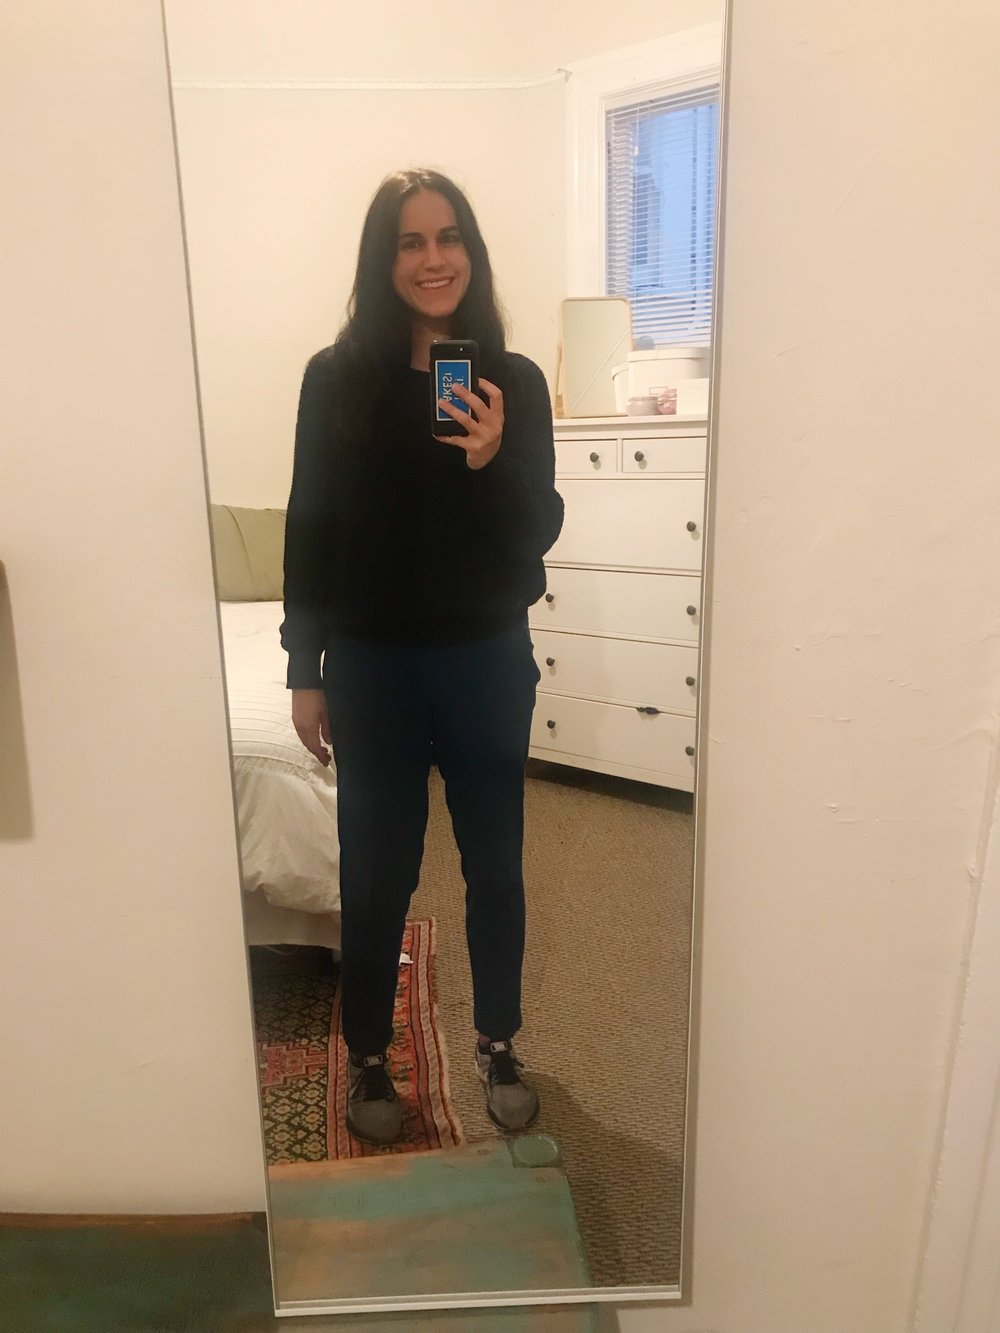 Here it goes. Mirror selfies. No going back from here. I'm wearing an  American Apparel  sweater,  Joie  pants, and  Nike shoes .